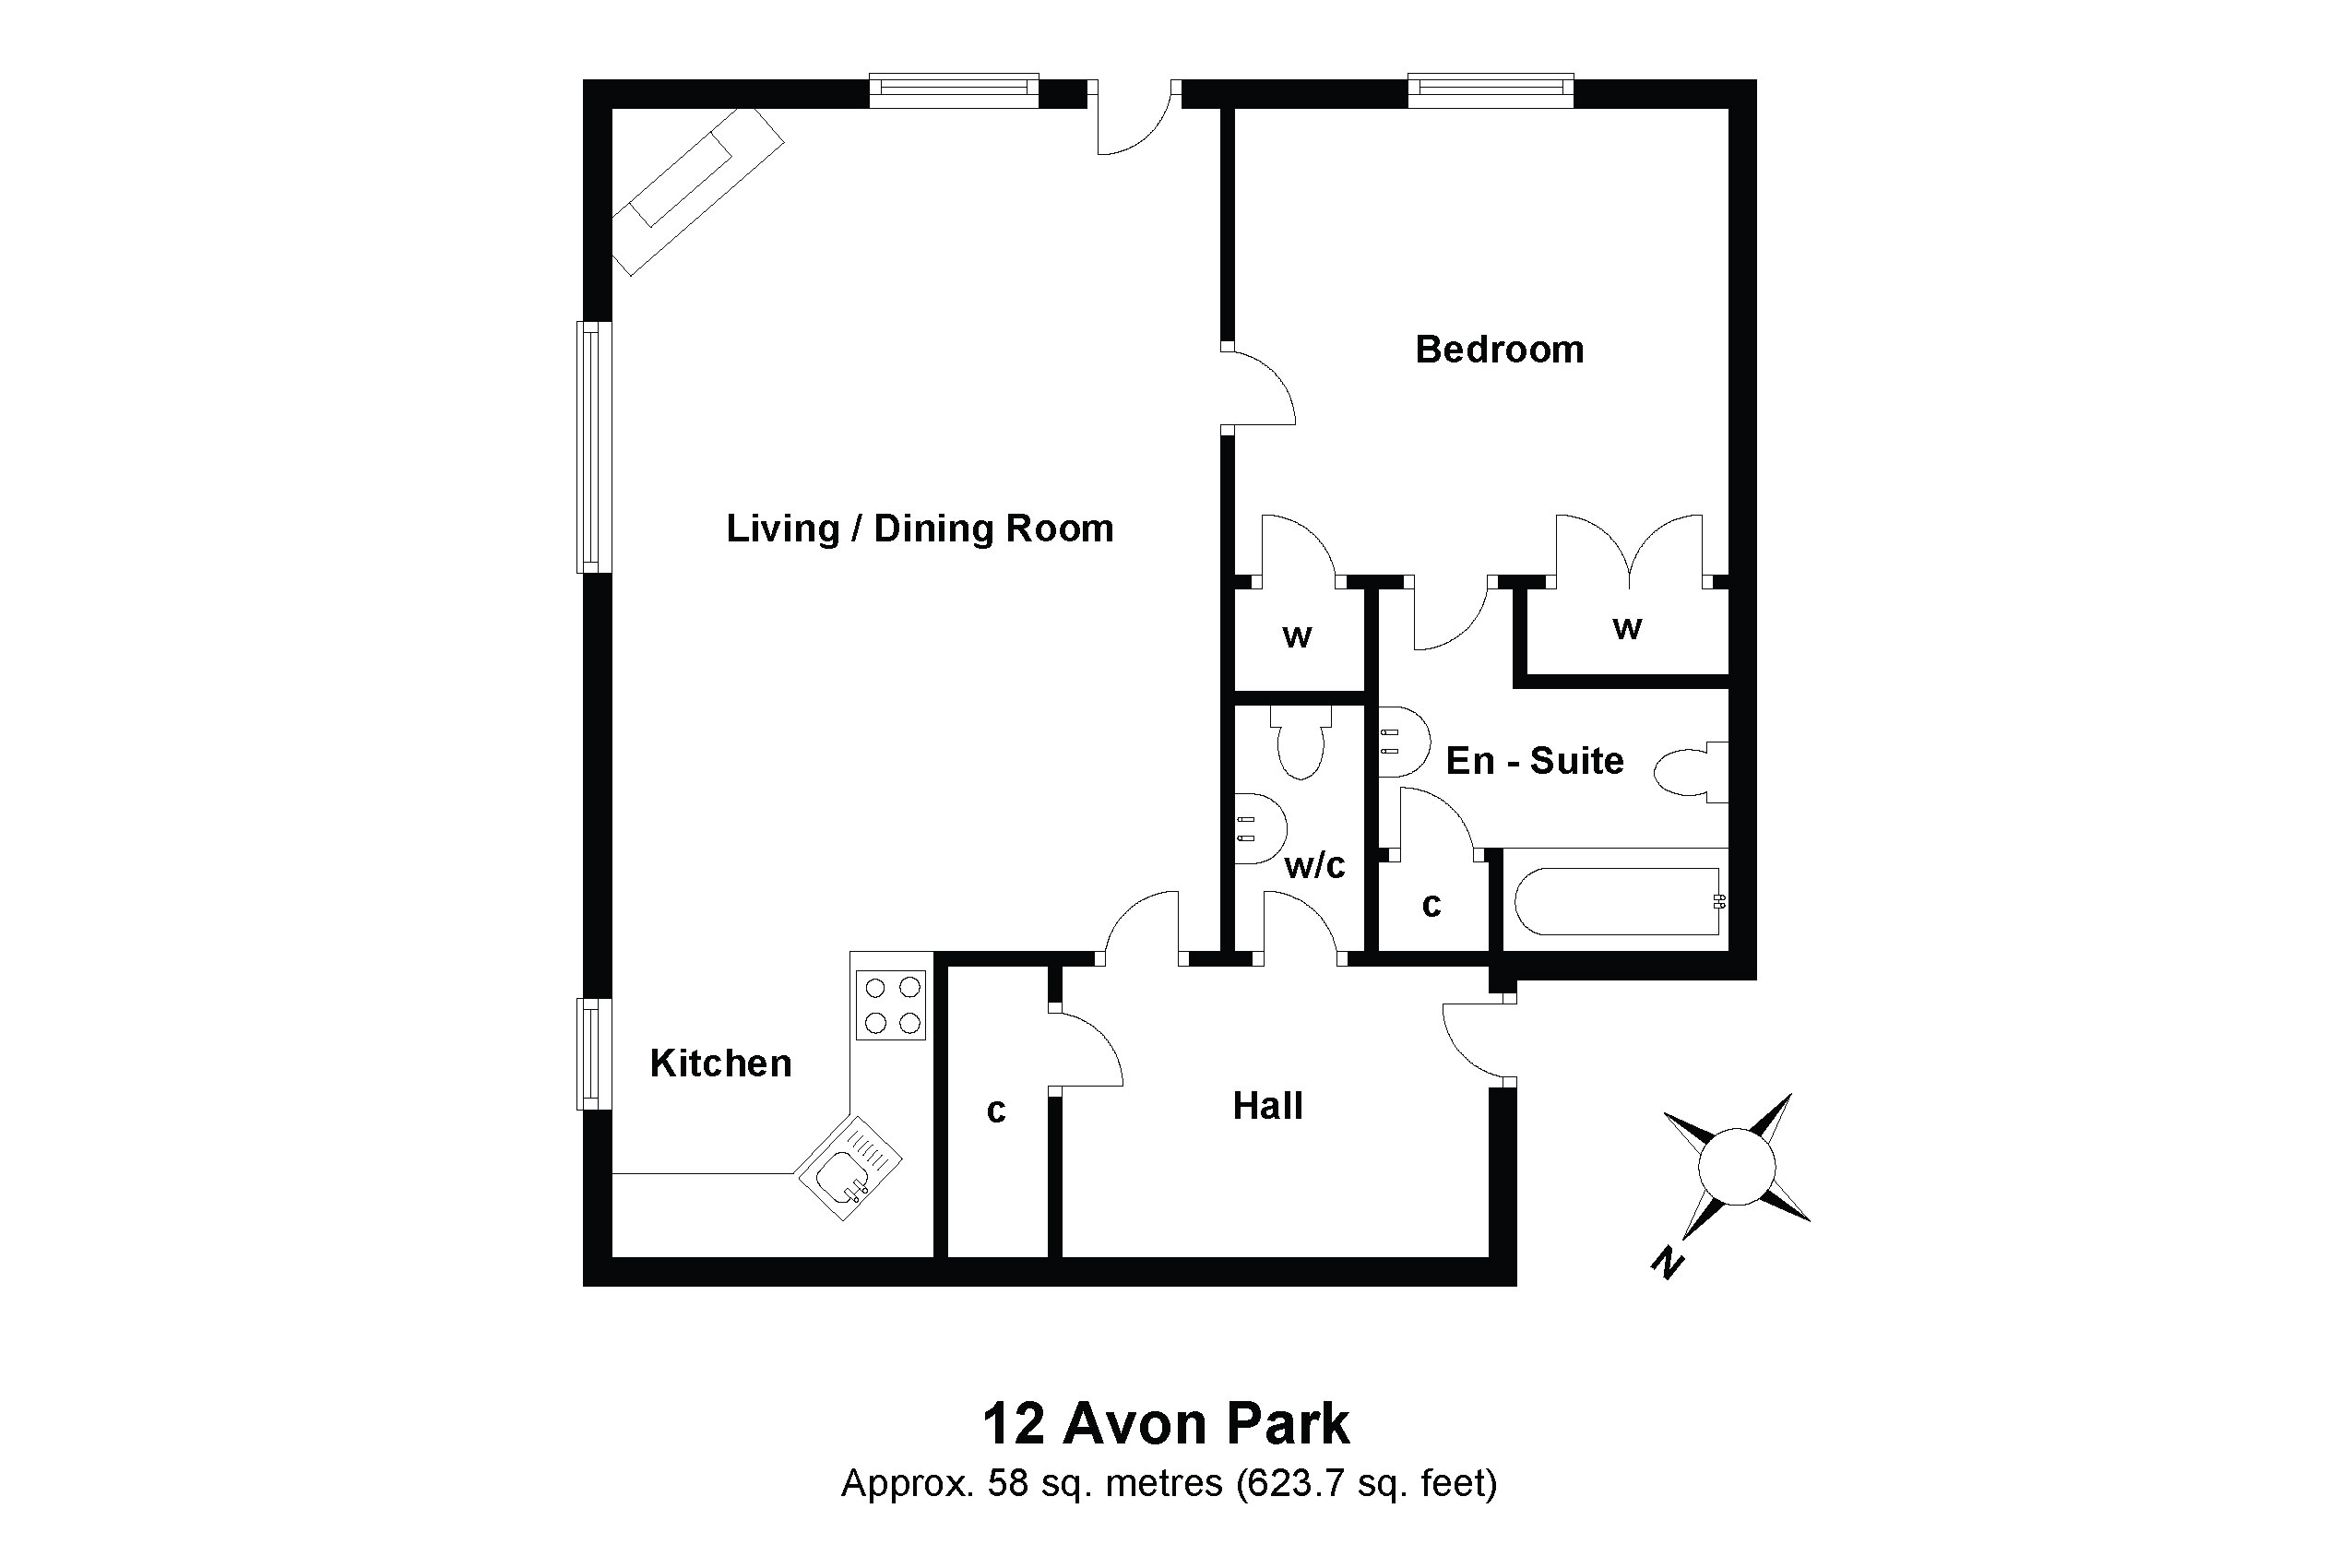 12 Avon Floorplan